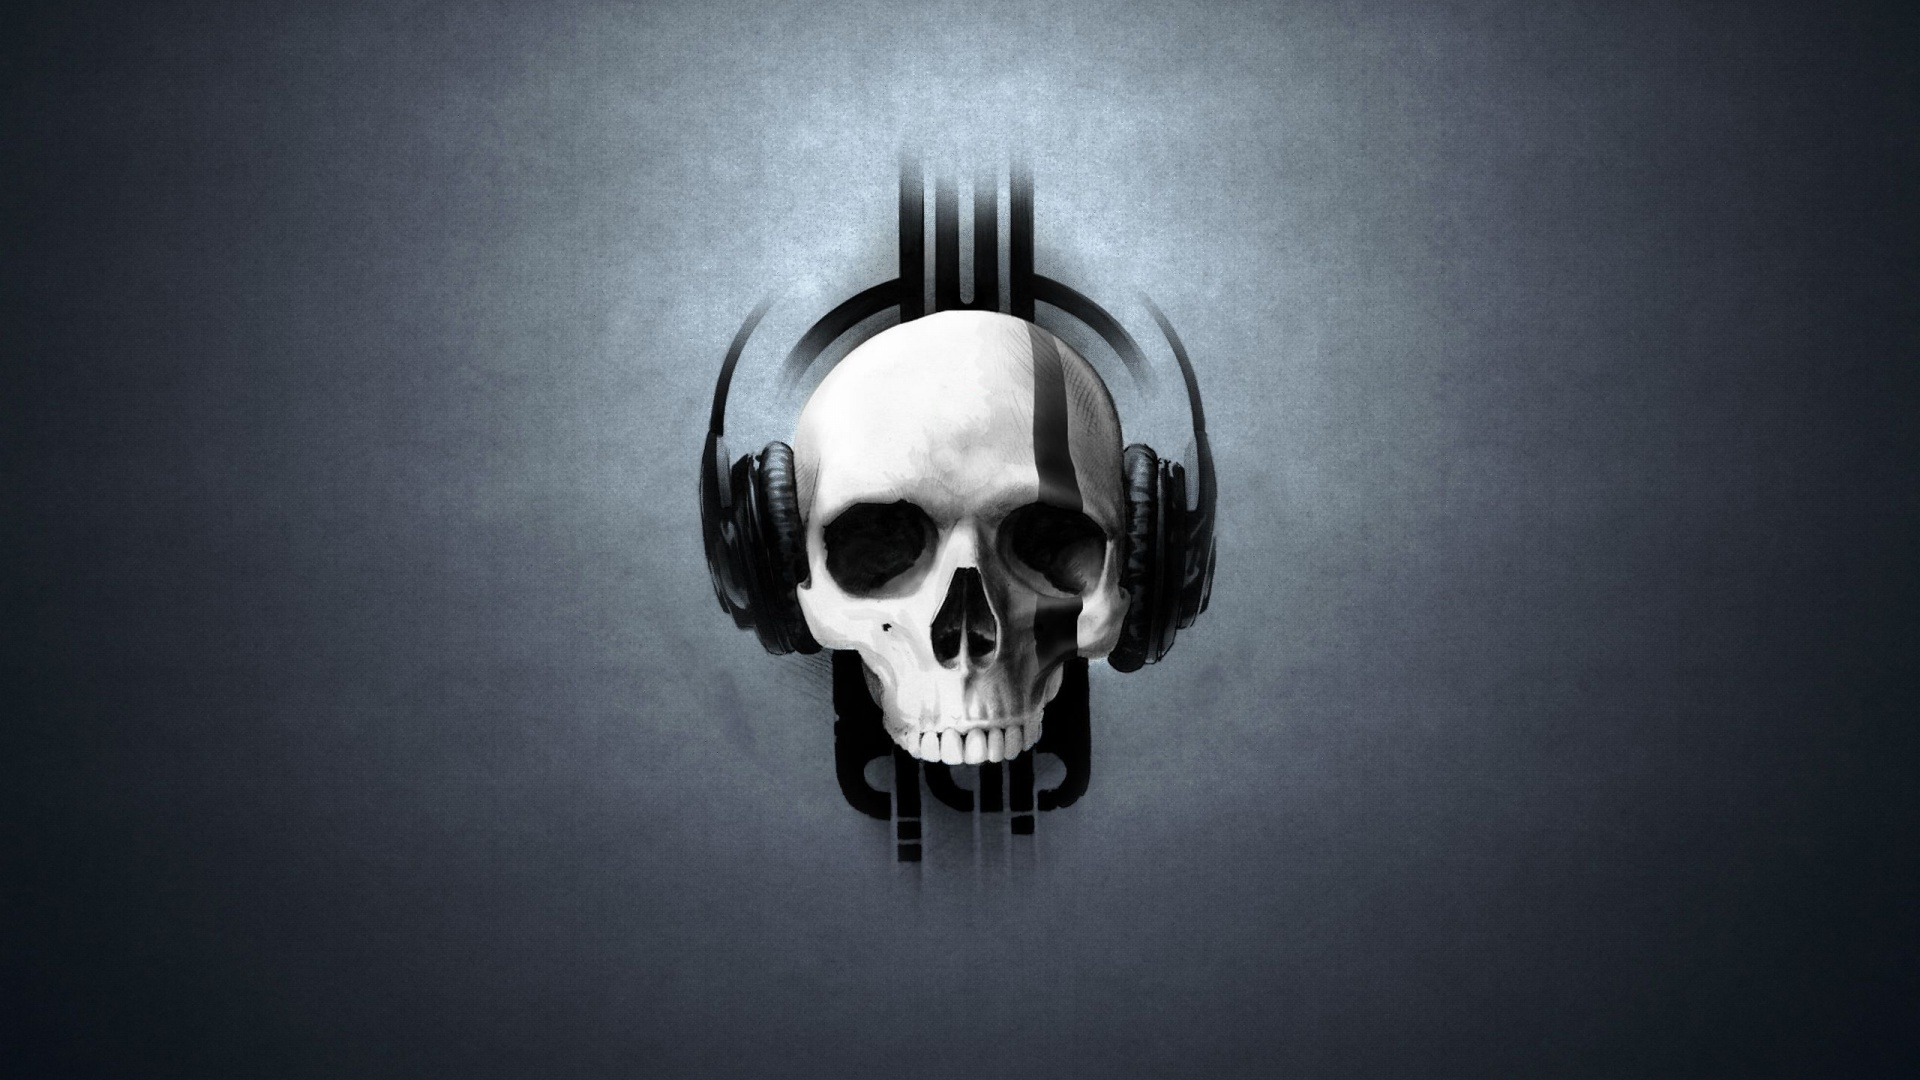 skull wallpaper wallpapers hd - photo #17